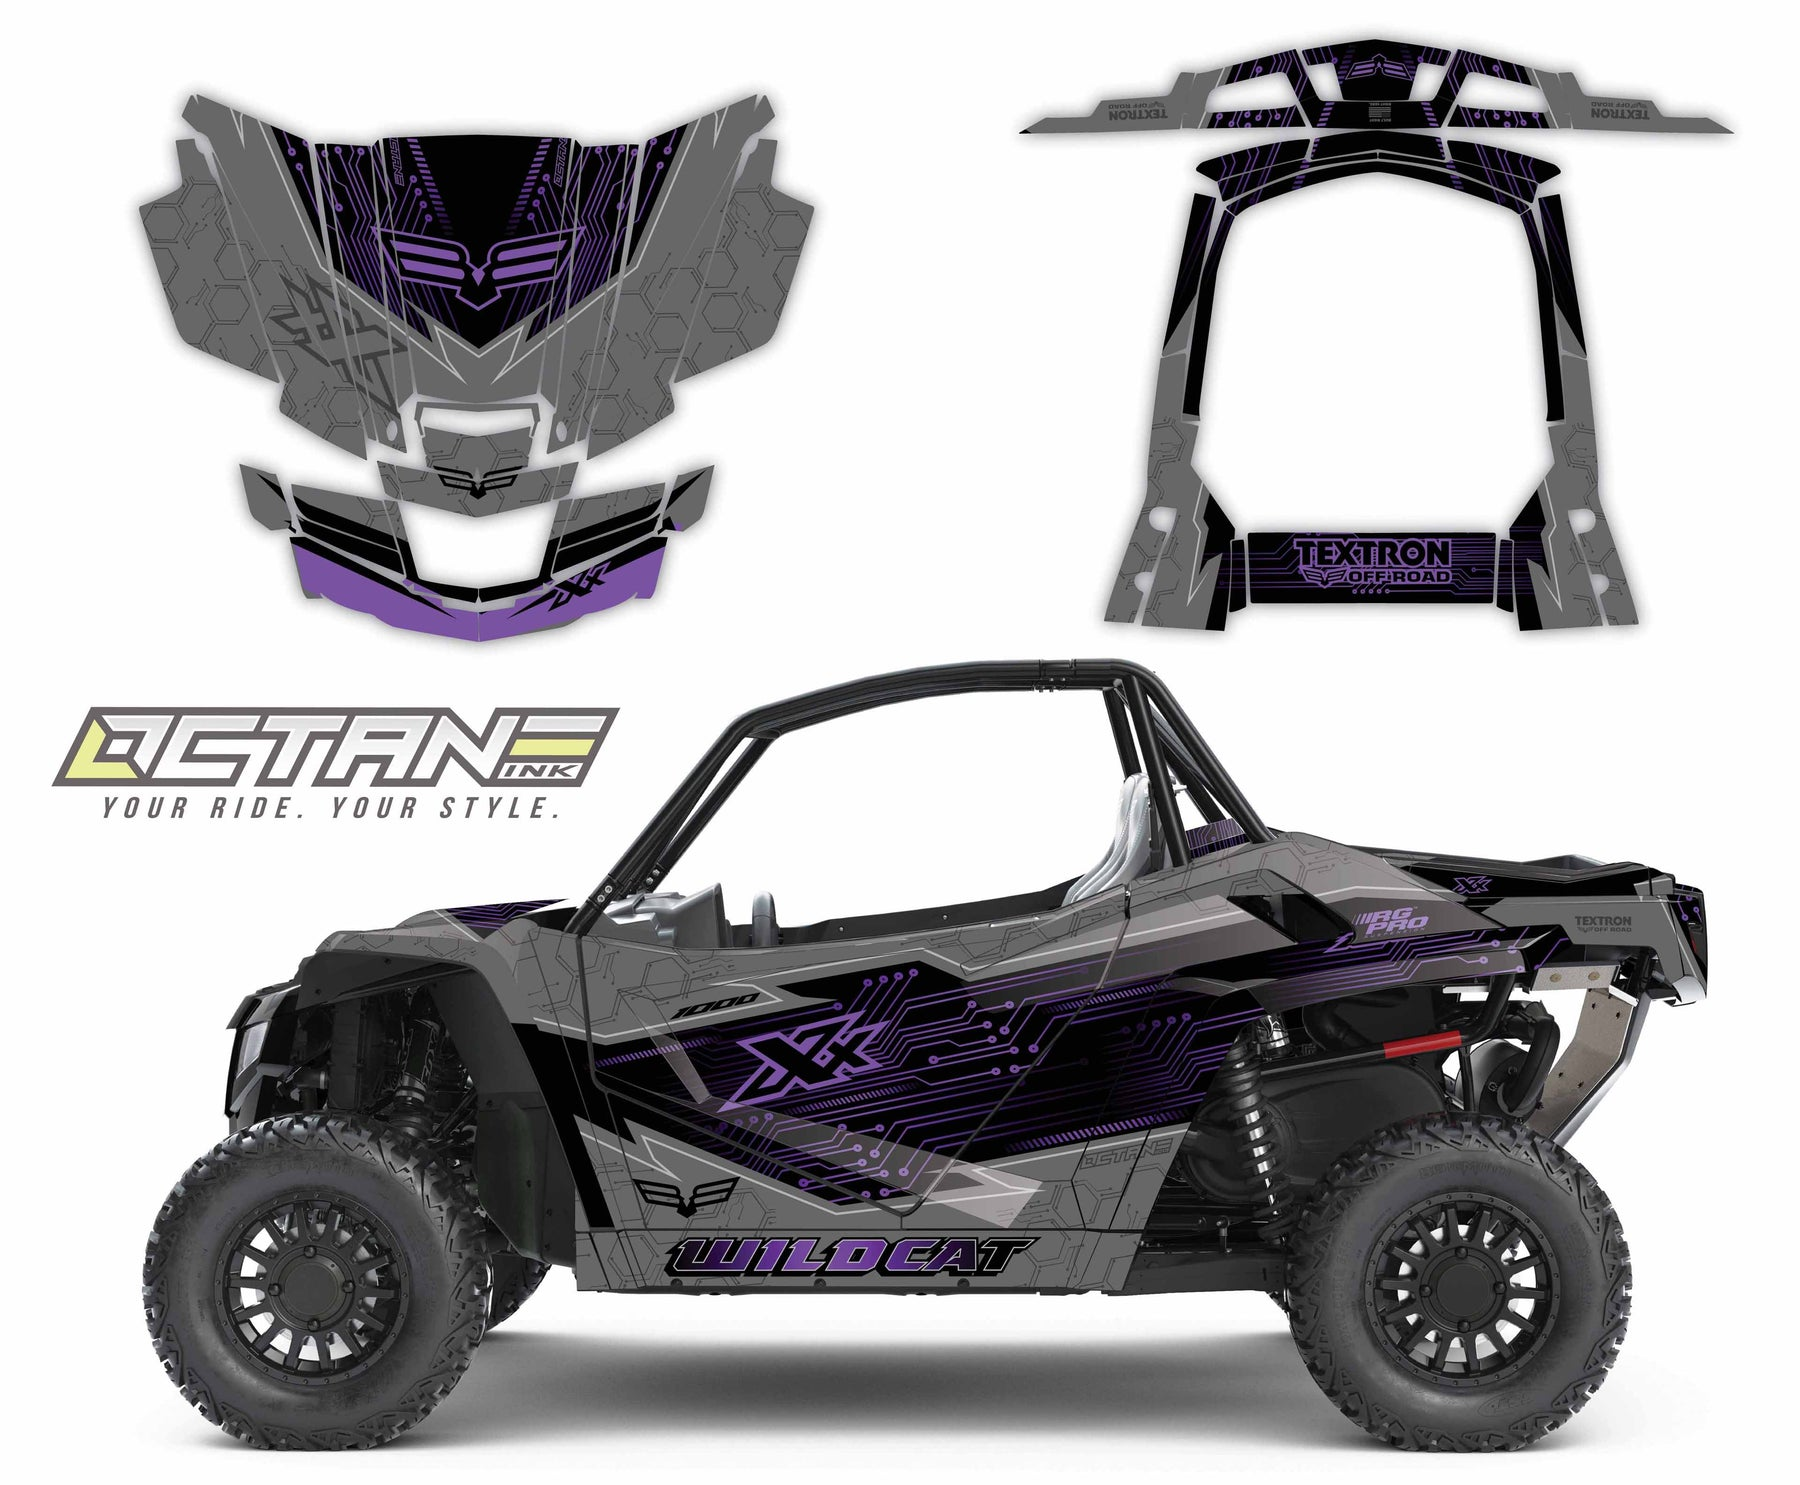 Octane Ink Wrap for Wildcat XX - 6-CIRCUIT - PURPLE/GRAY